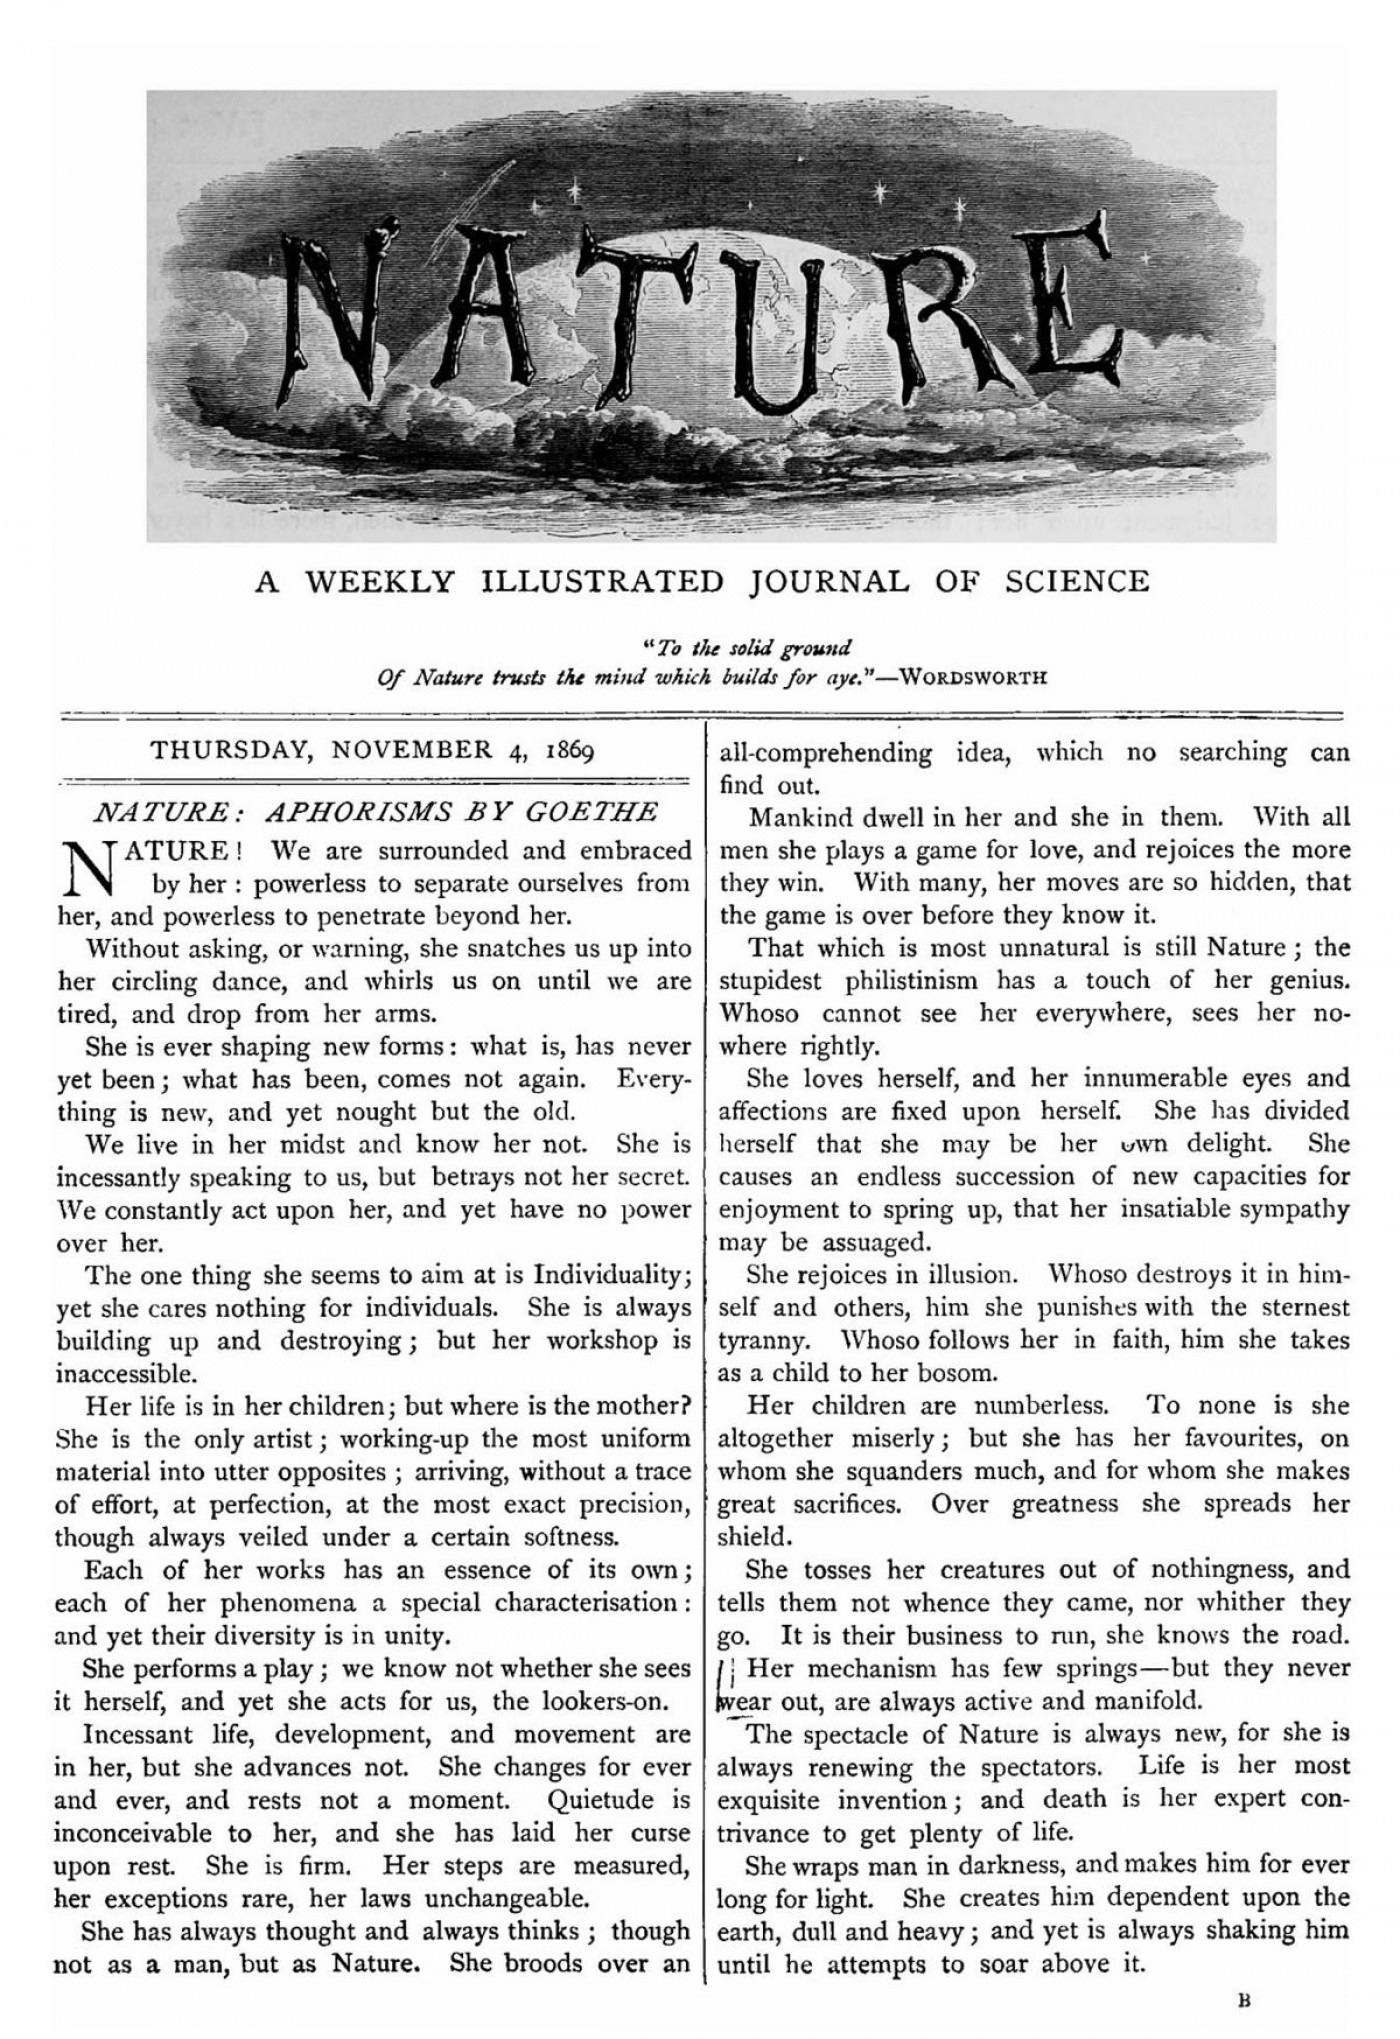 005 Best Journals To Publish Research Papers In Computer Science Paper 1200px Nature Cover2c November 42c 1869 Astounding 1400